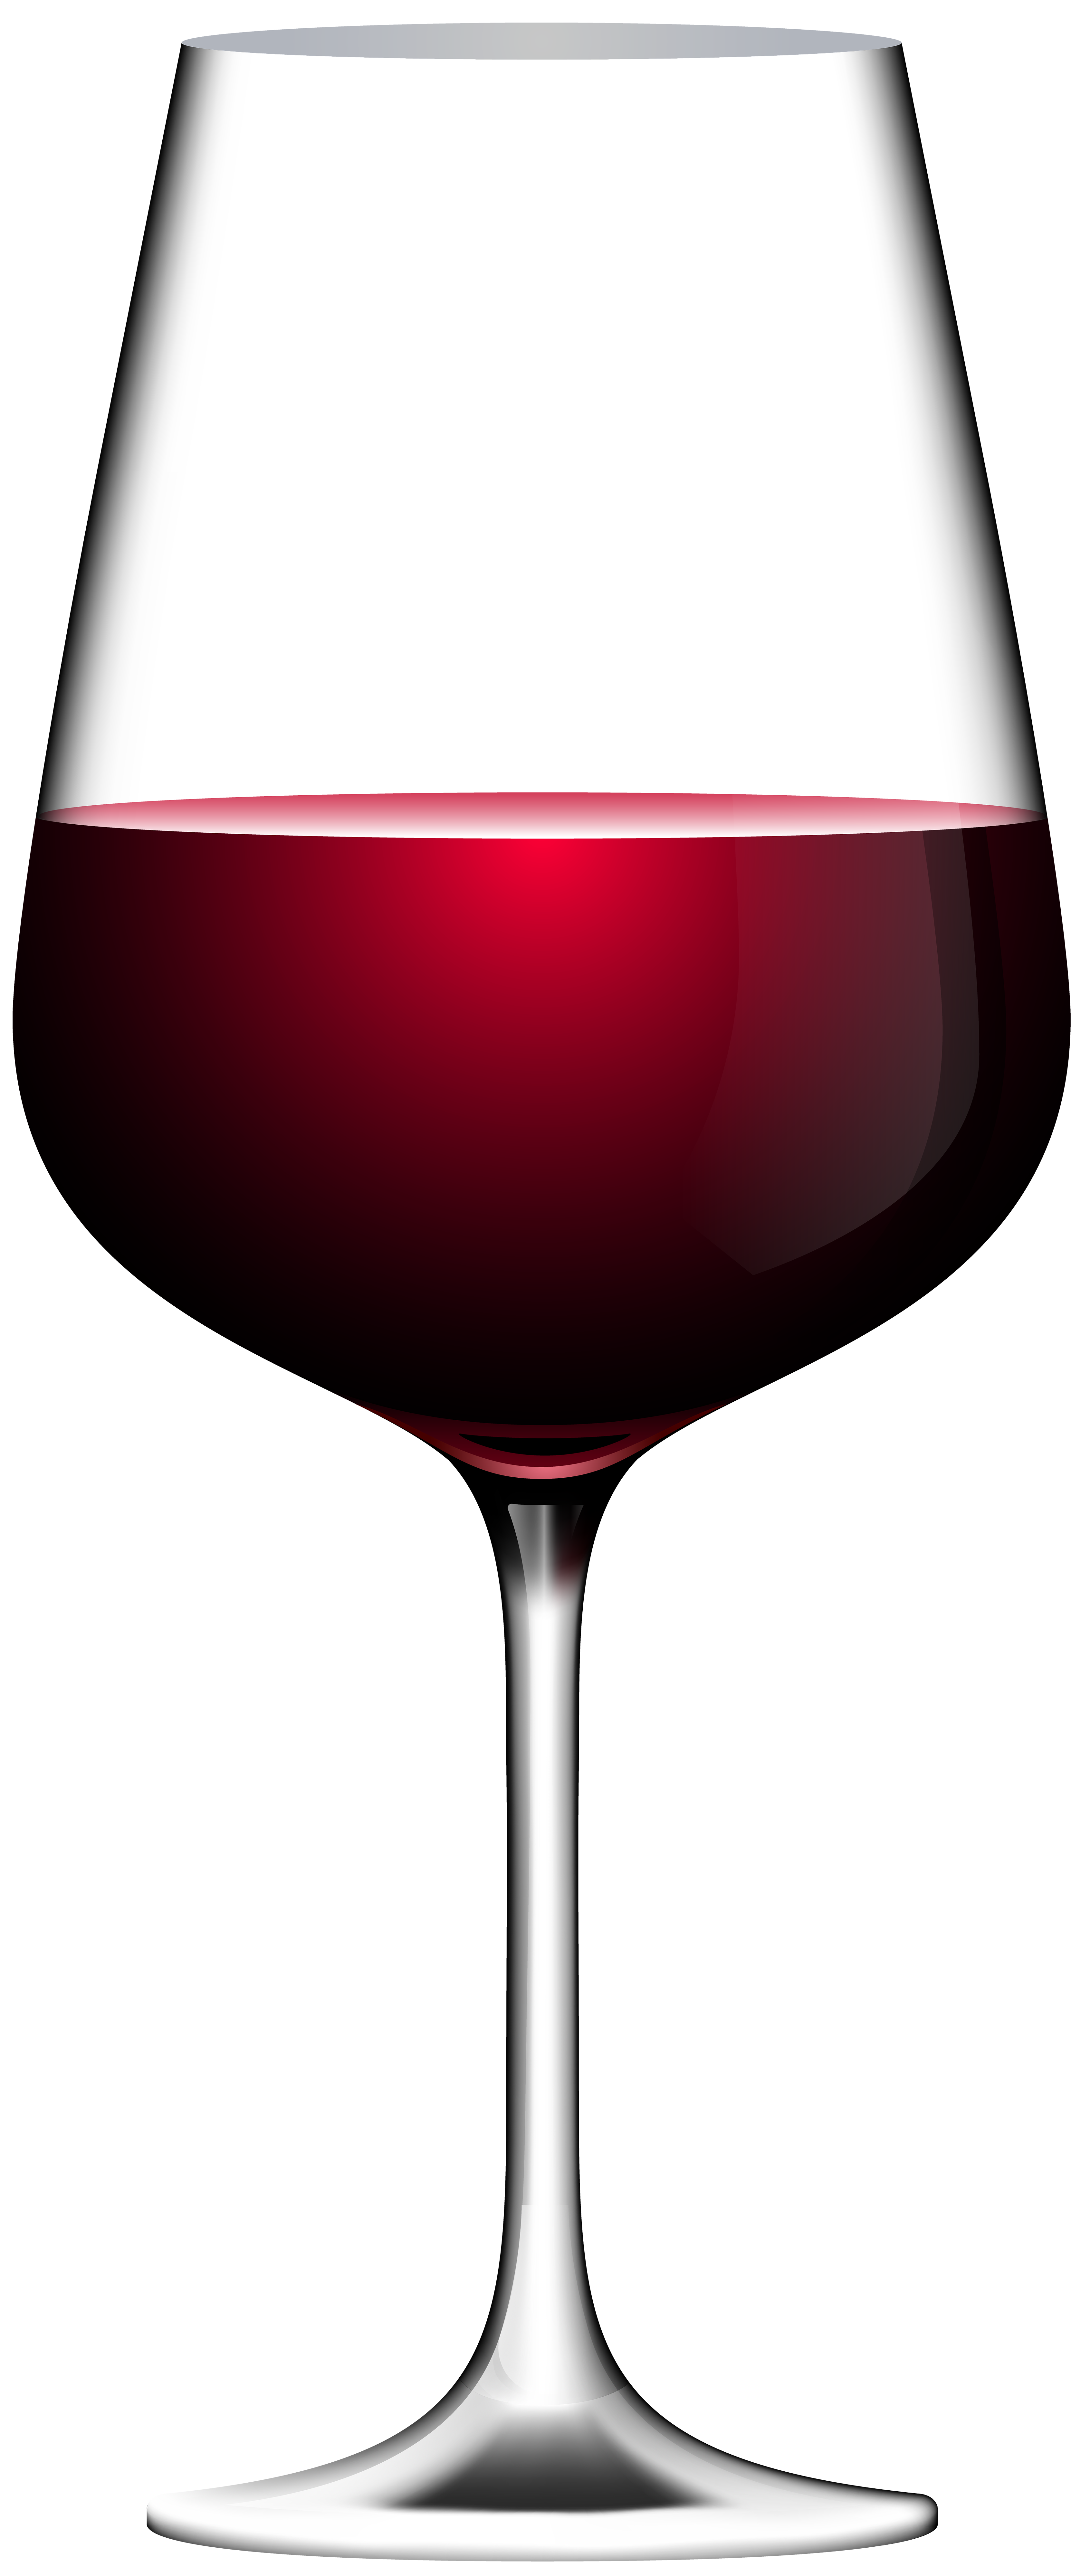 Alcohol clipart transparent Yopriceville full Glass Clip Wine